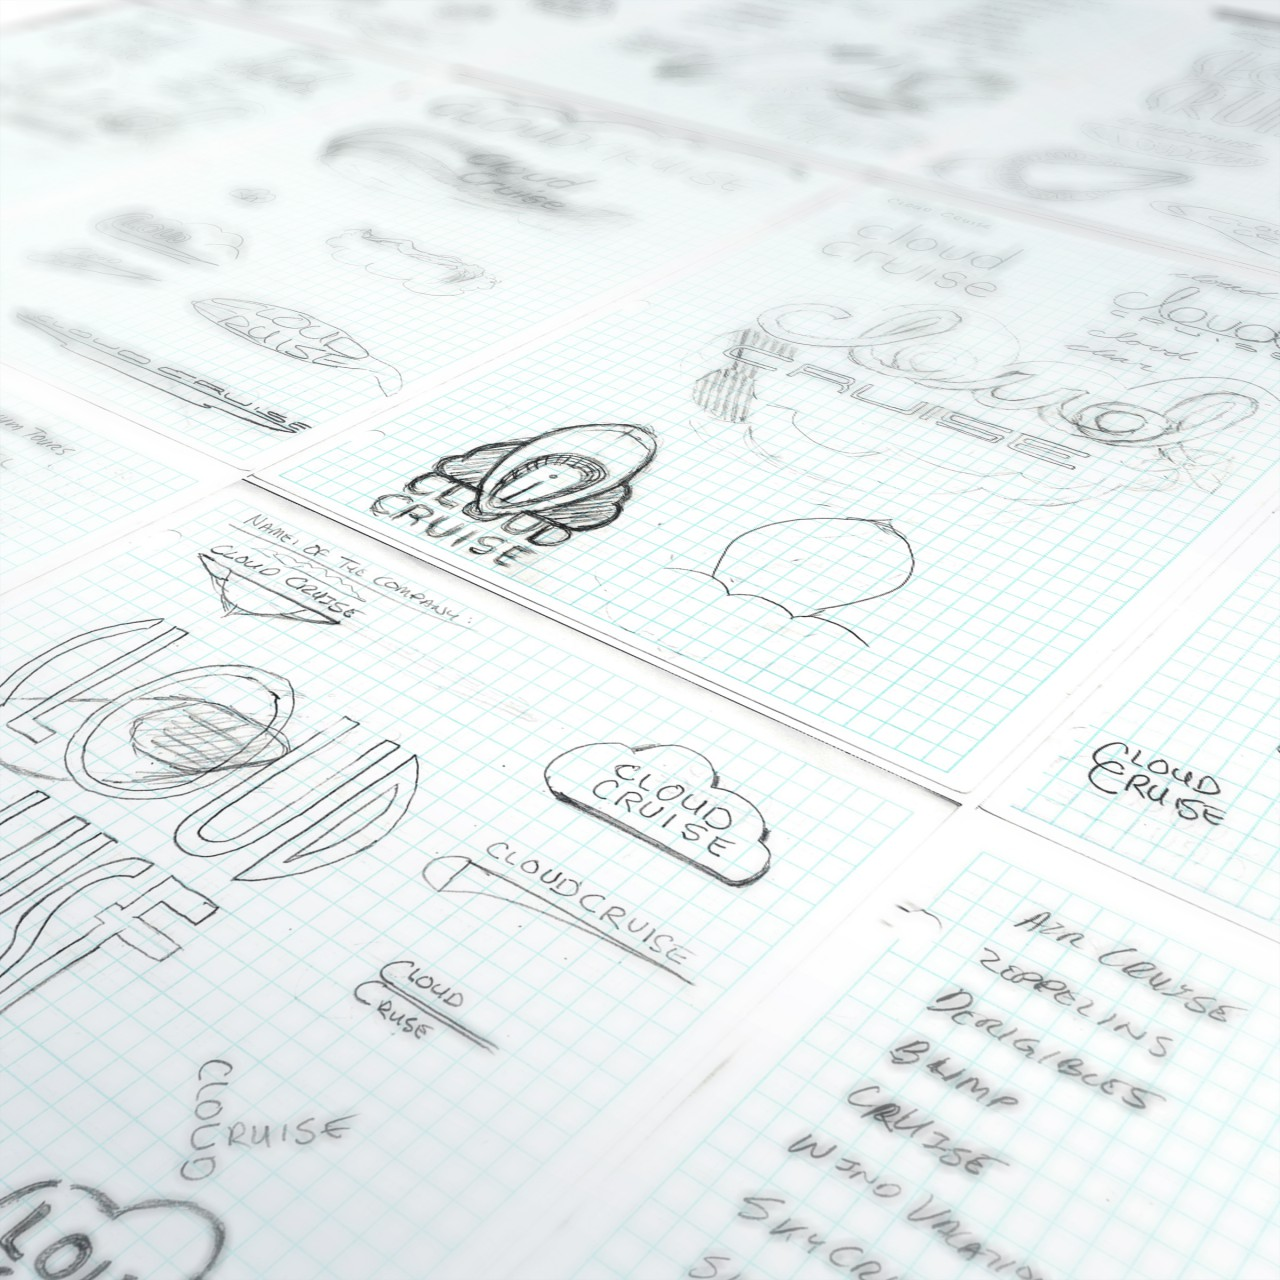 Image of Cloud Cruise logo process drawings